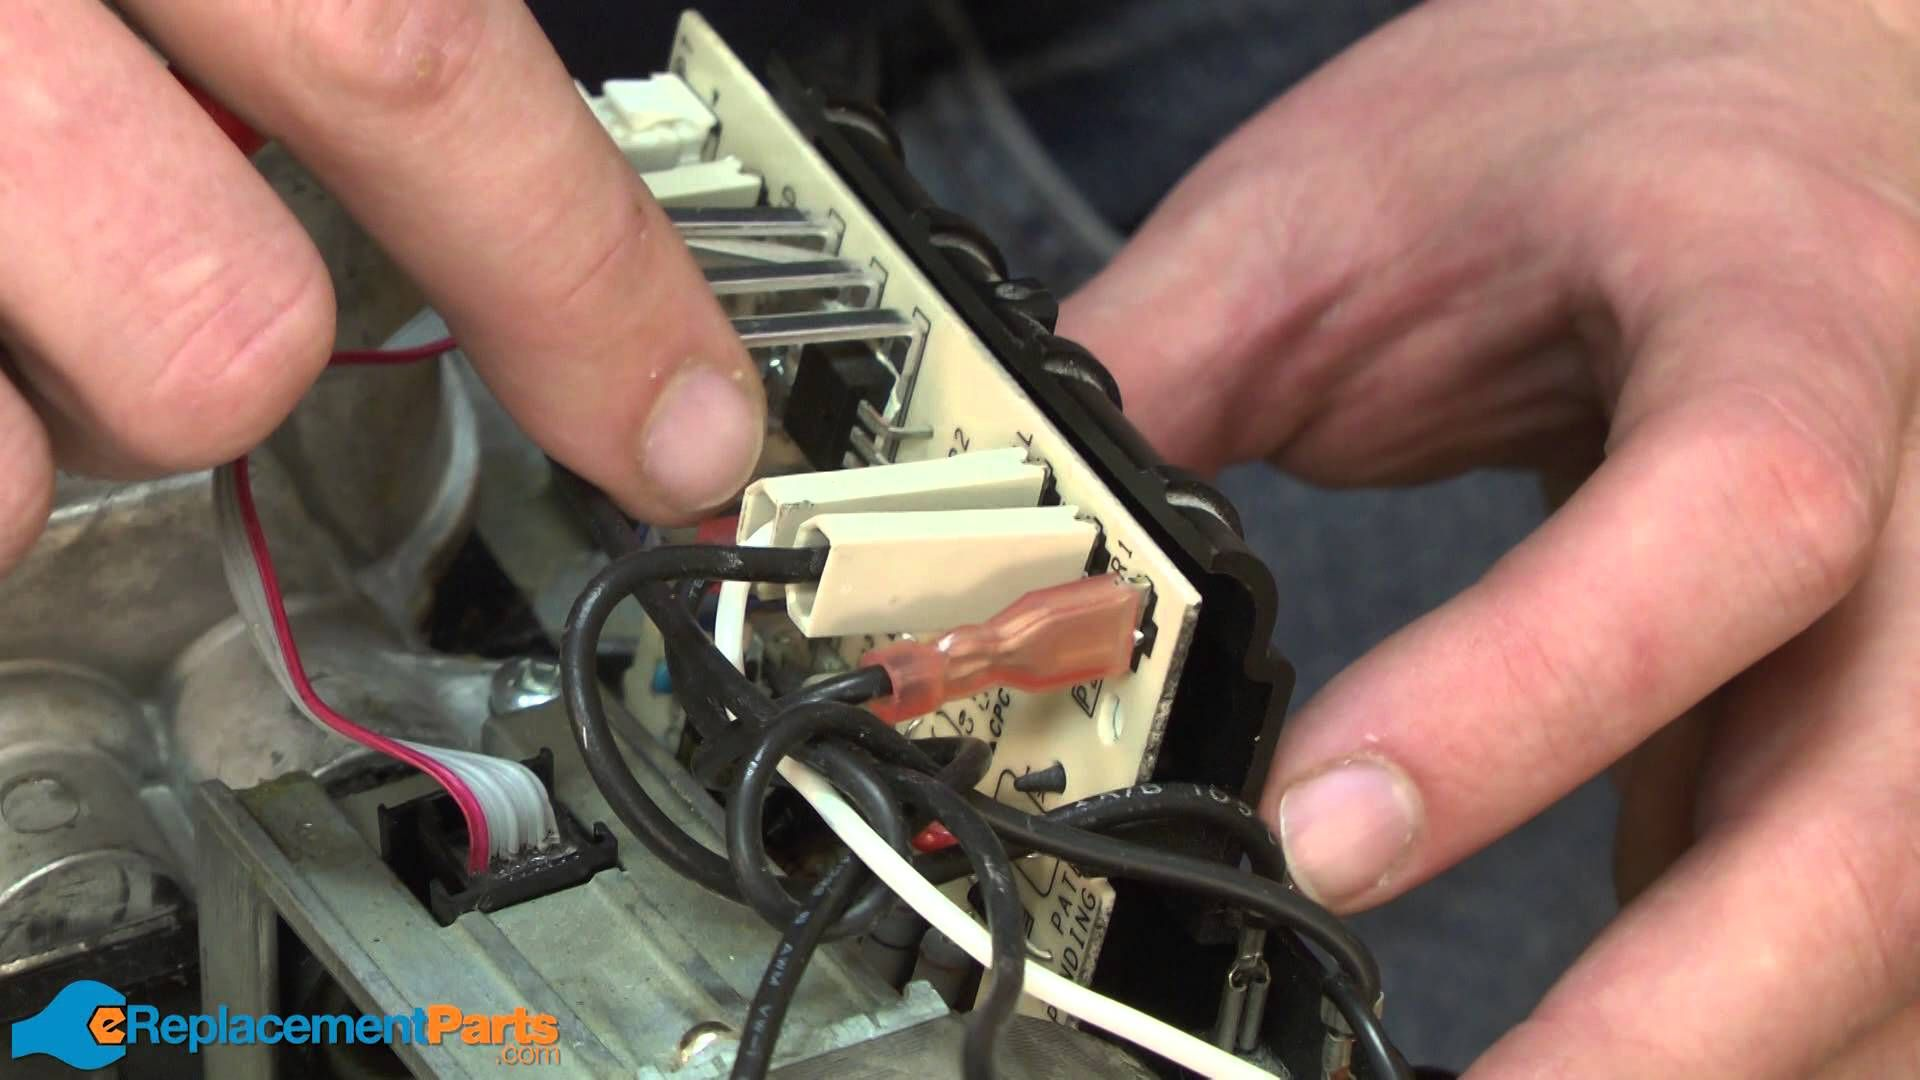 How to replace the speed control board on an older style